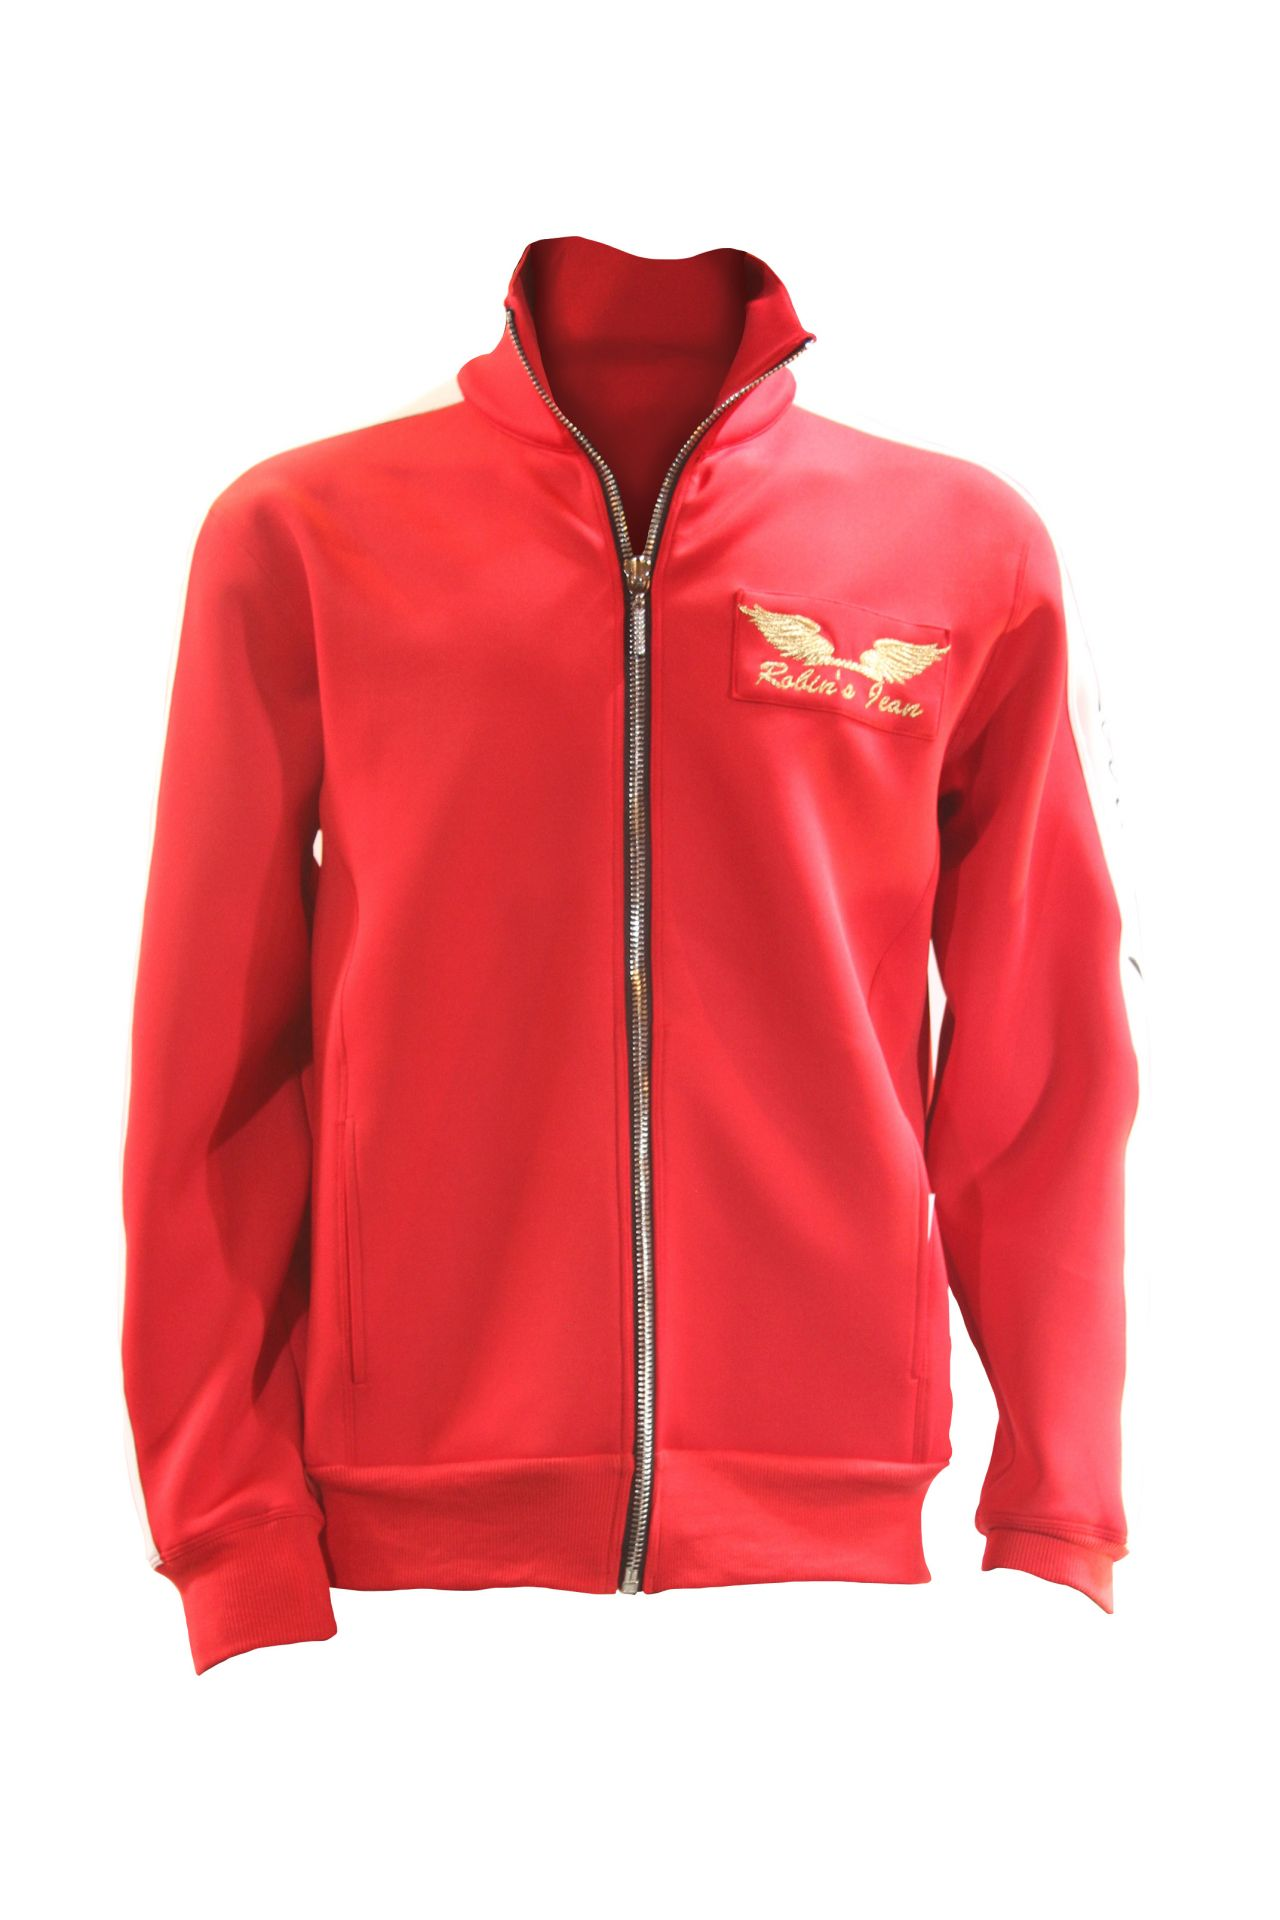 ROBIN TEAM TRACK JACKET IN RED